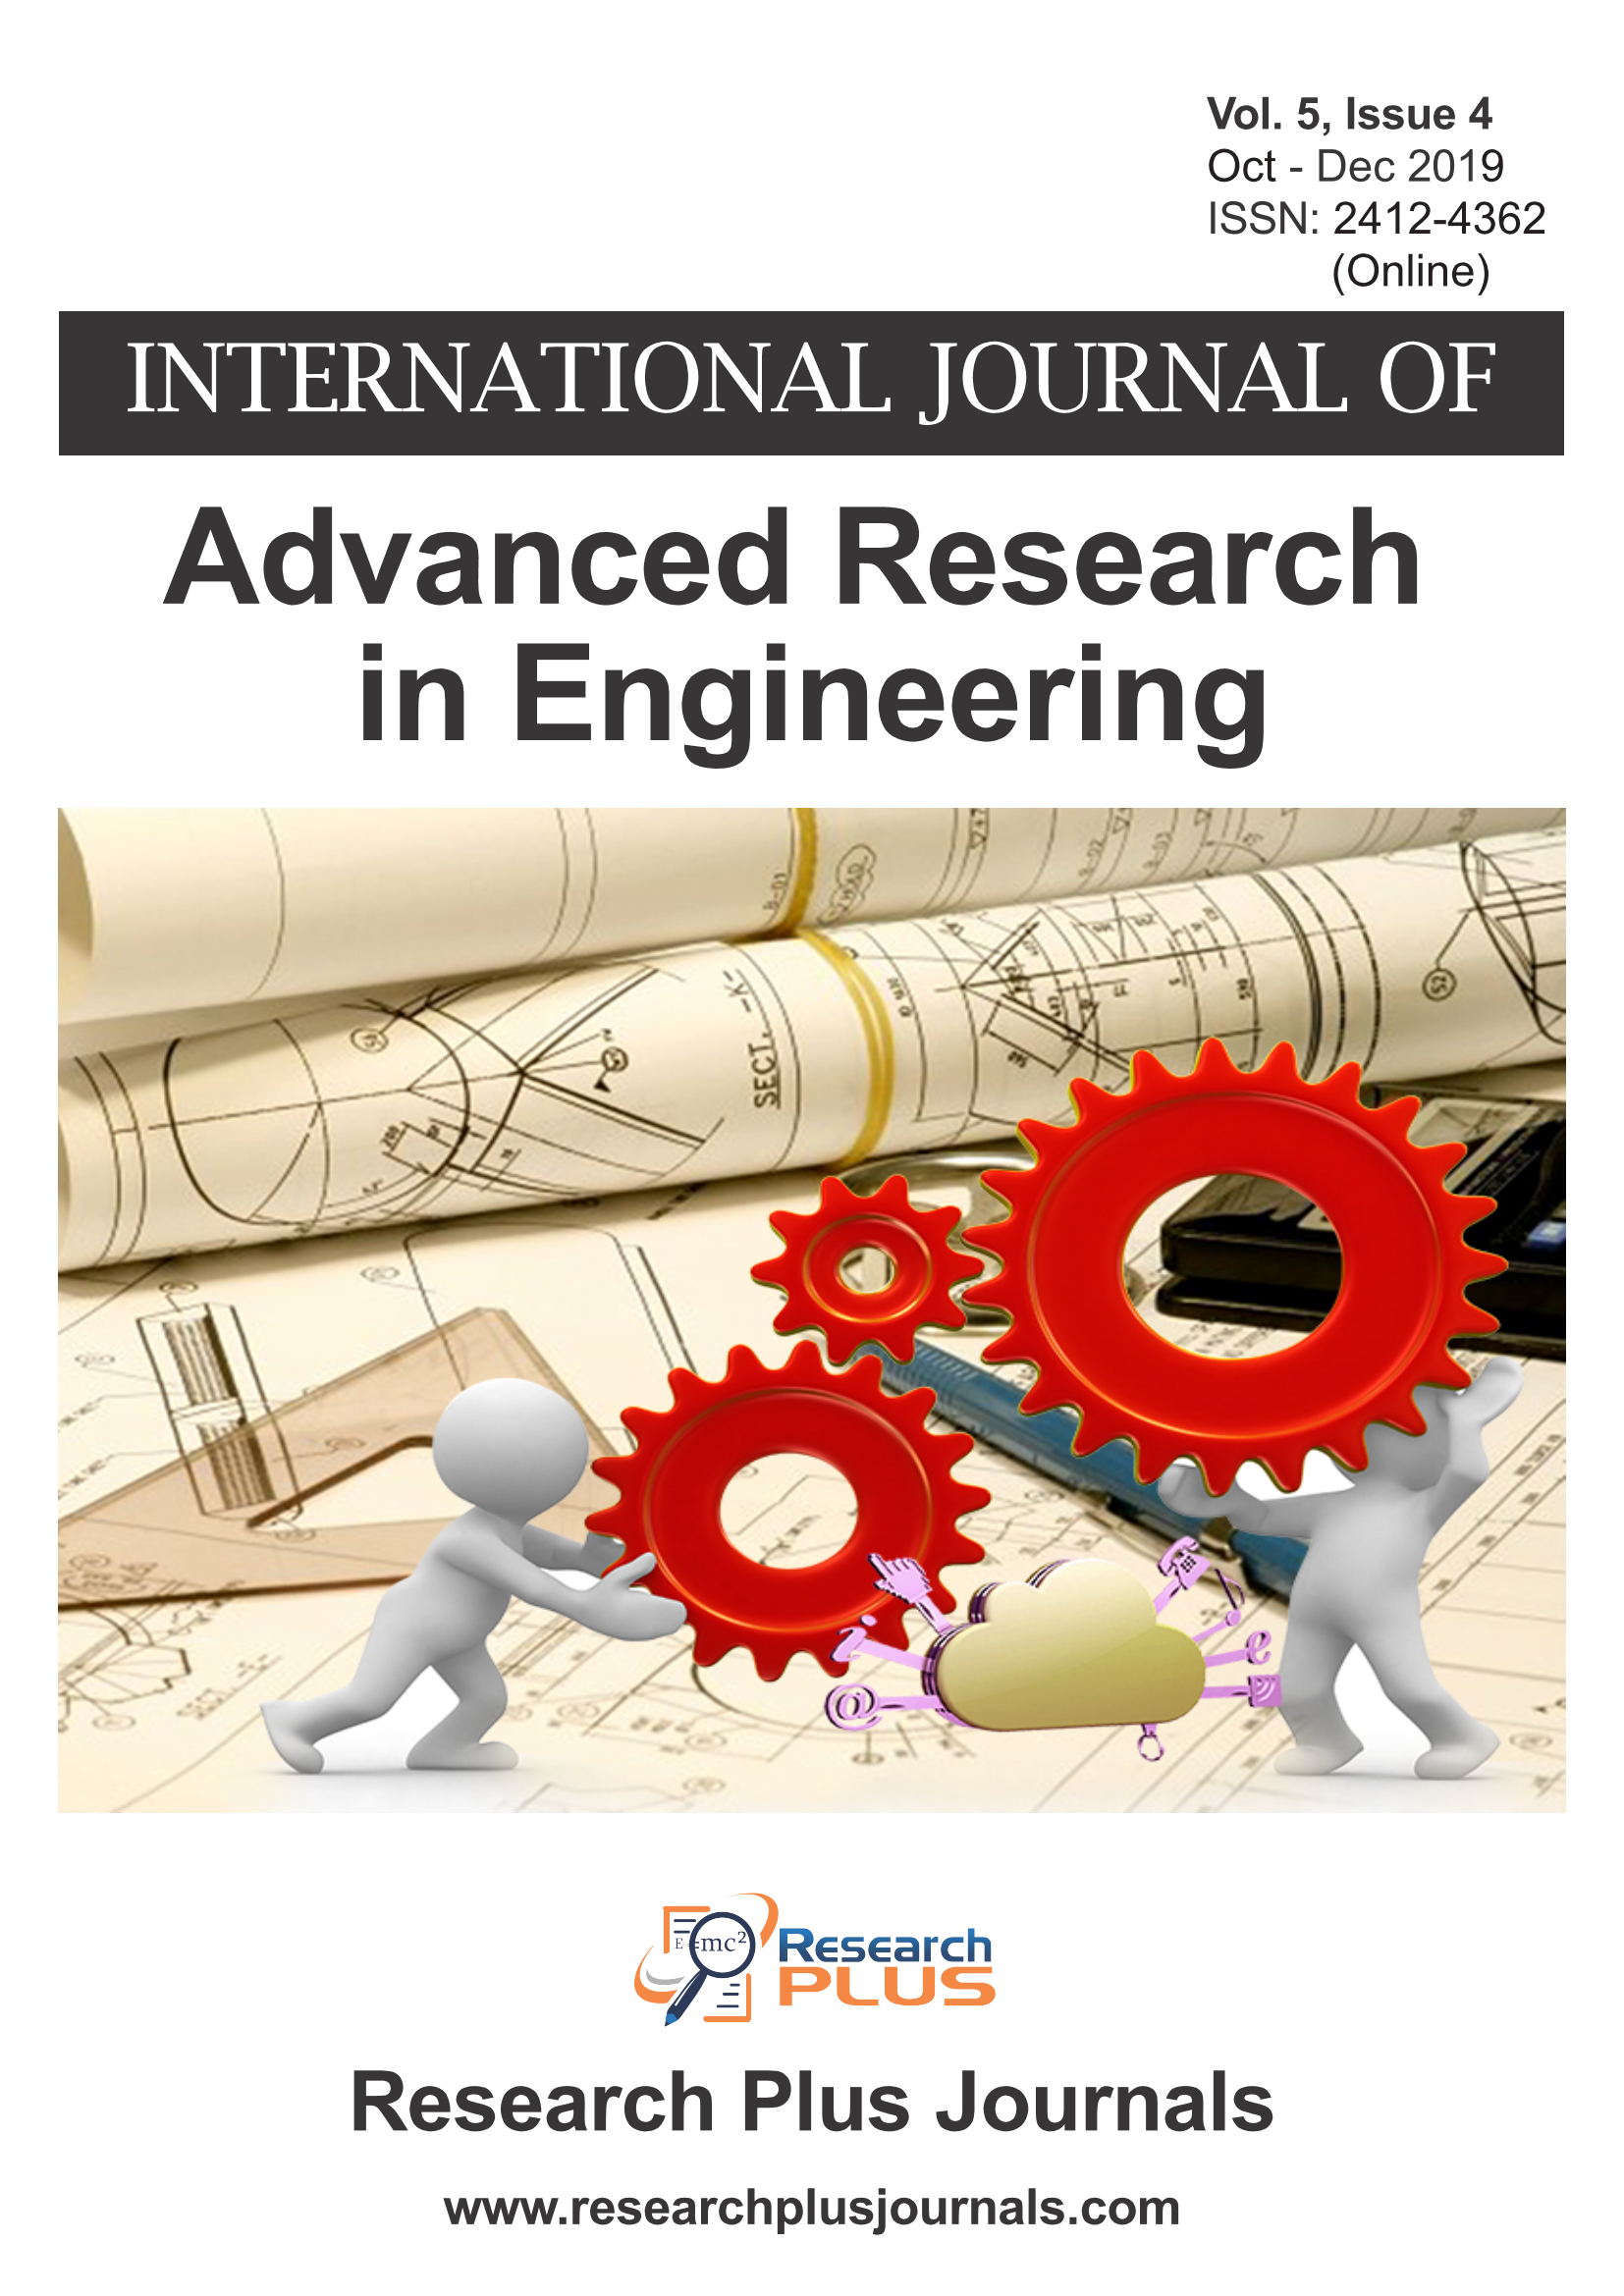 Volume 5, Issue 4, International Journal of Advanced Research in Engineering (IJARE)  (Online ISSN 2412-4362)